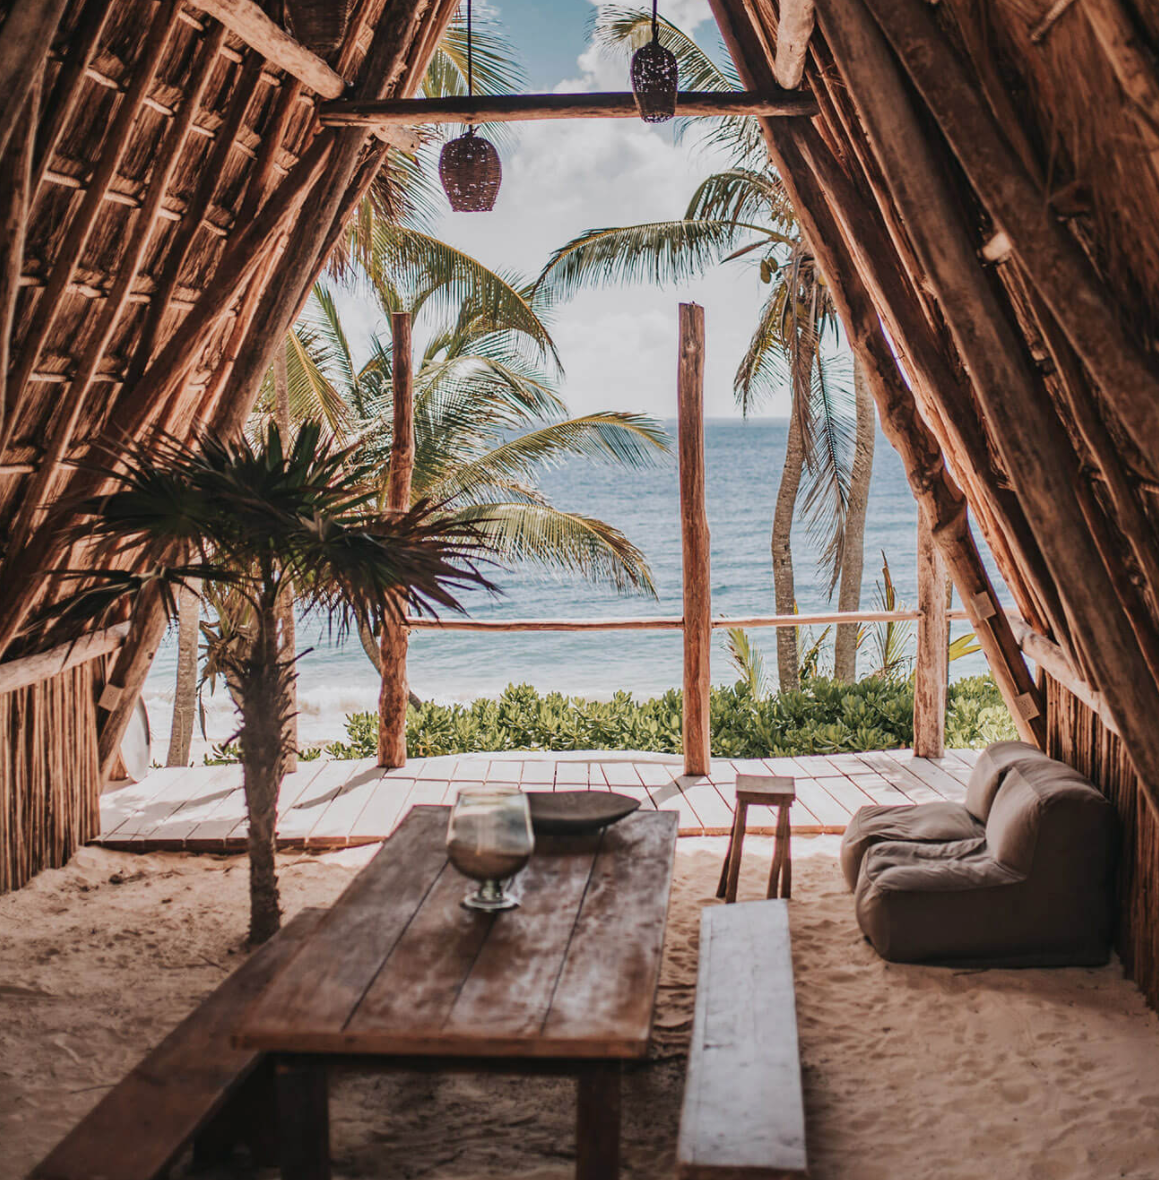 Papaya Playa Project, Tulum - jungle bungalow with thatch roof, bean bag lounges, and view of ocean